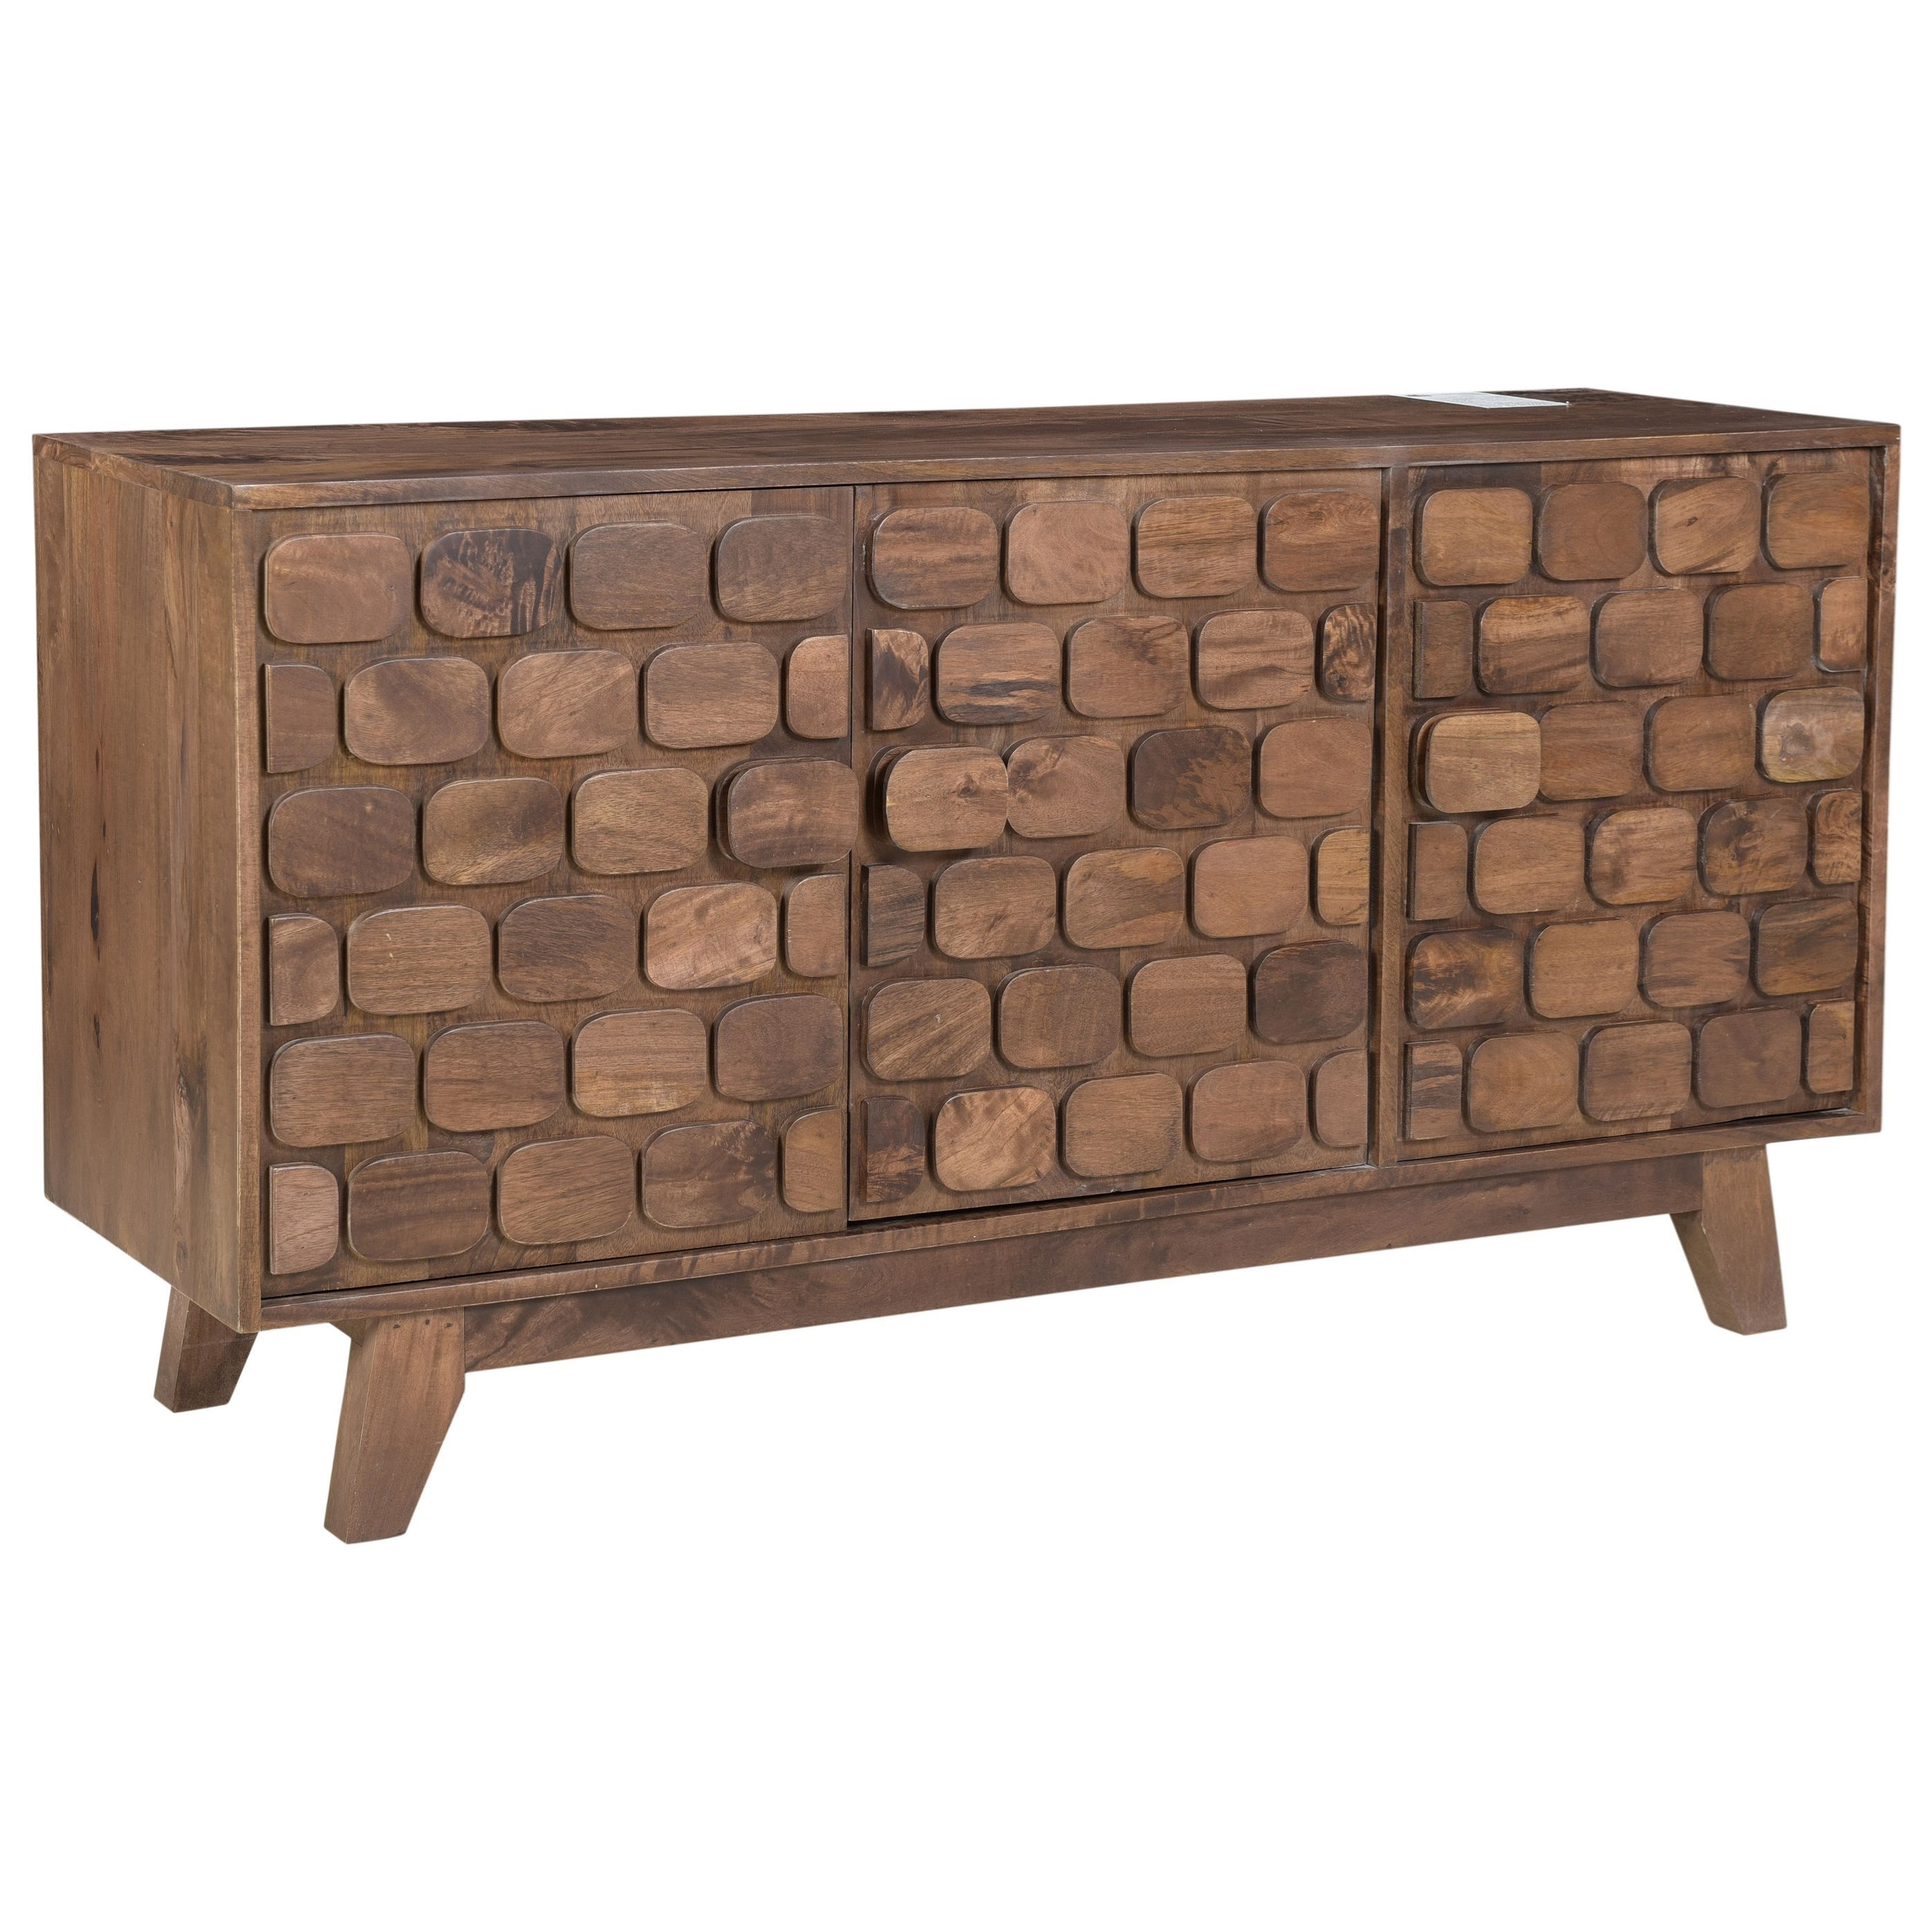 Darby Accent Server by Steve Silver at Northeast Factory Direct